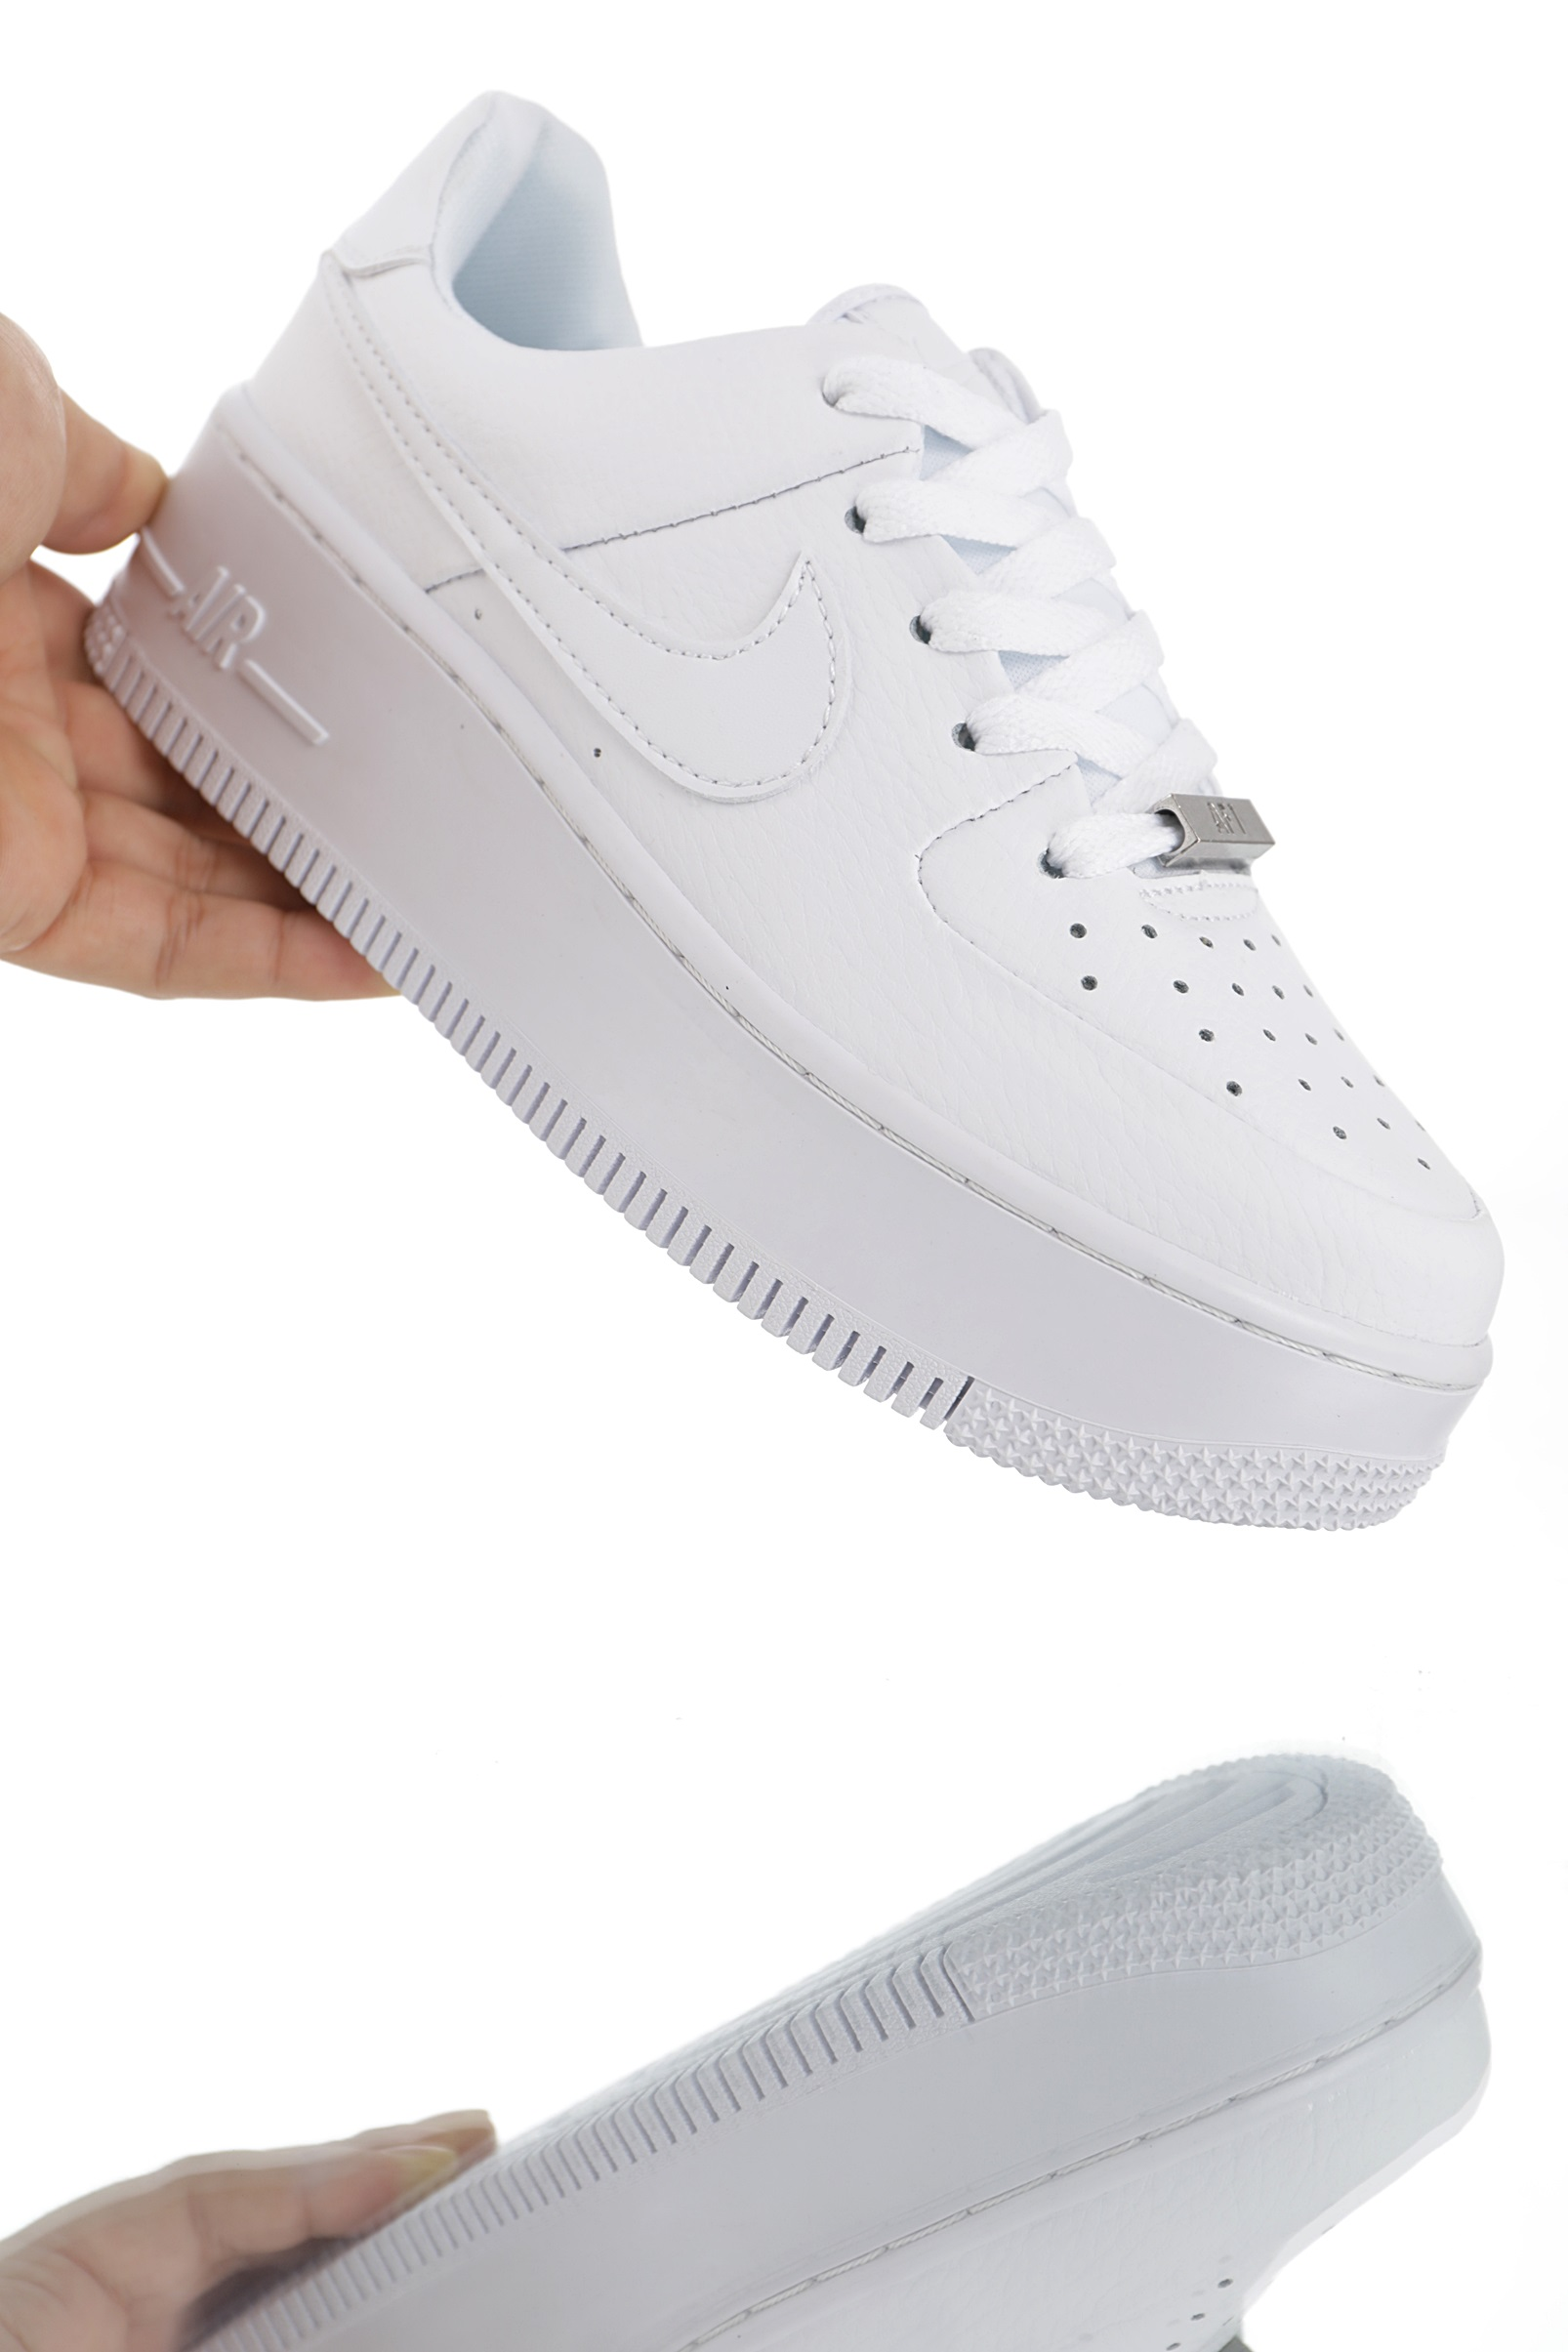 Cheapest Perfect Quality Fake Air Force 1 Sage Low Triple White W Online For Sale Ar5339 100 White White White Luxury Trade Club This model was created 33 years ago and is still popular. fake air force 1 sage low triple white